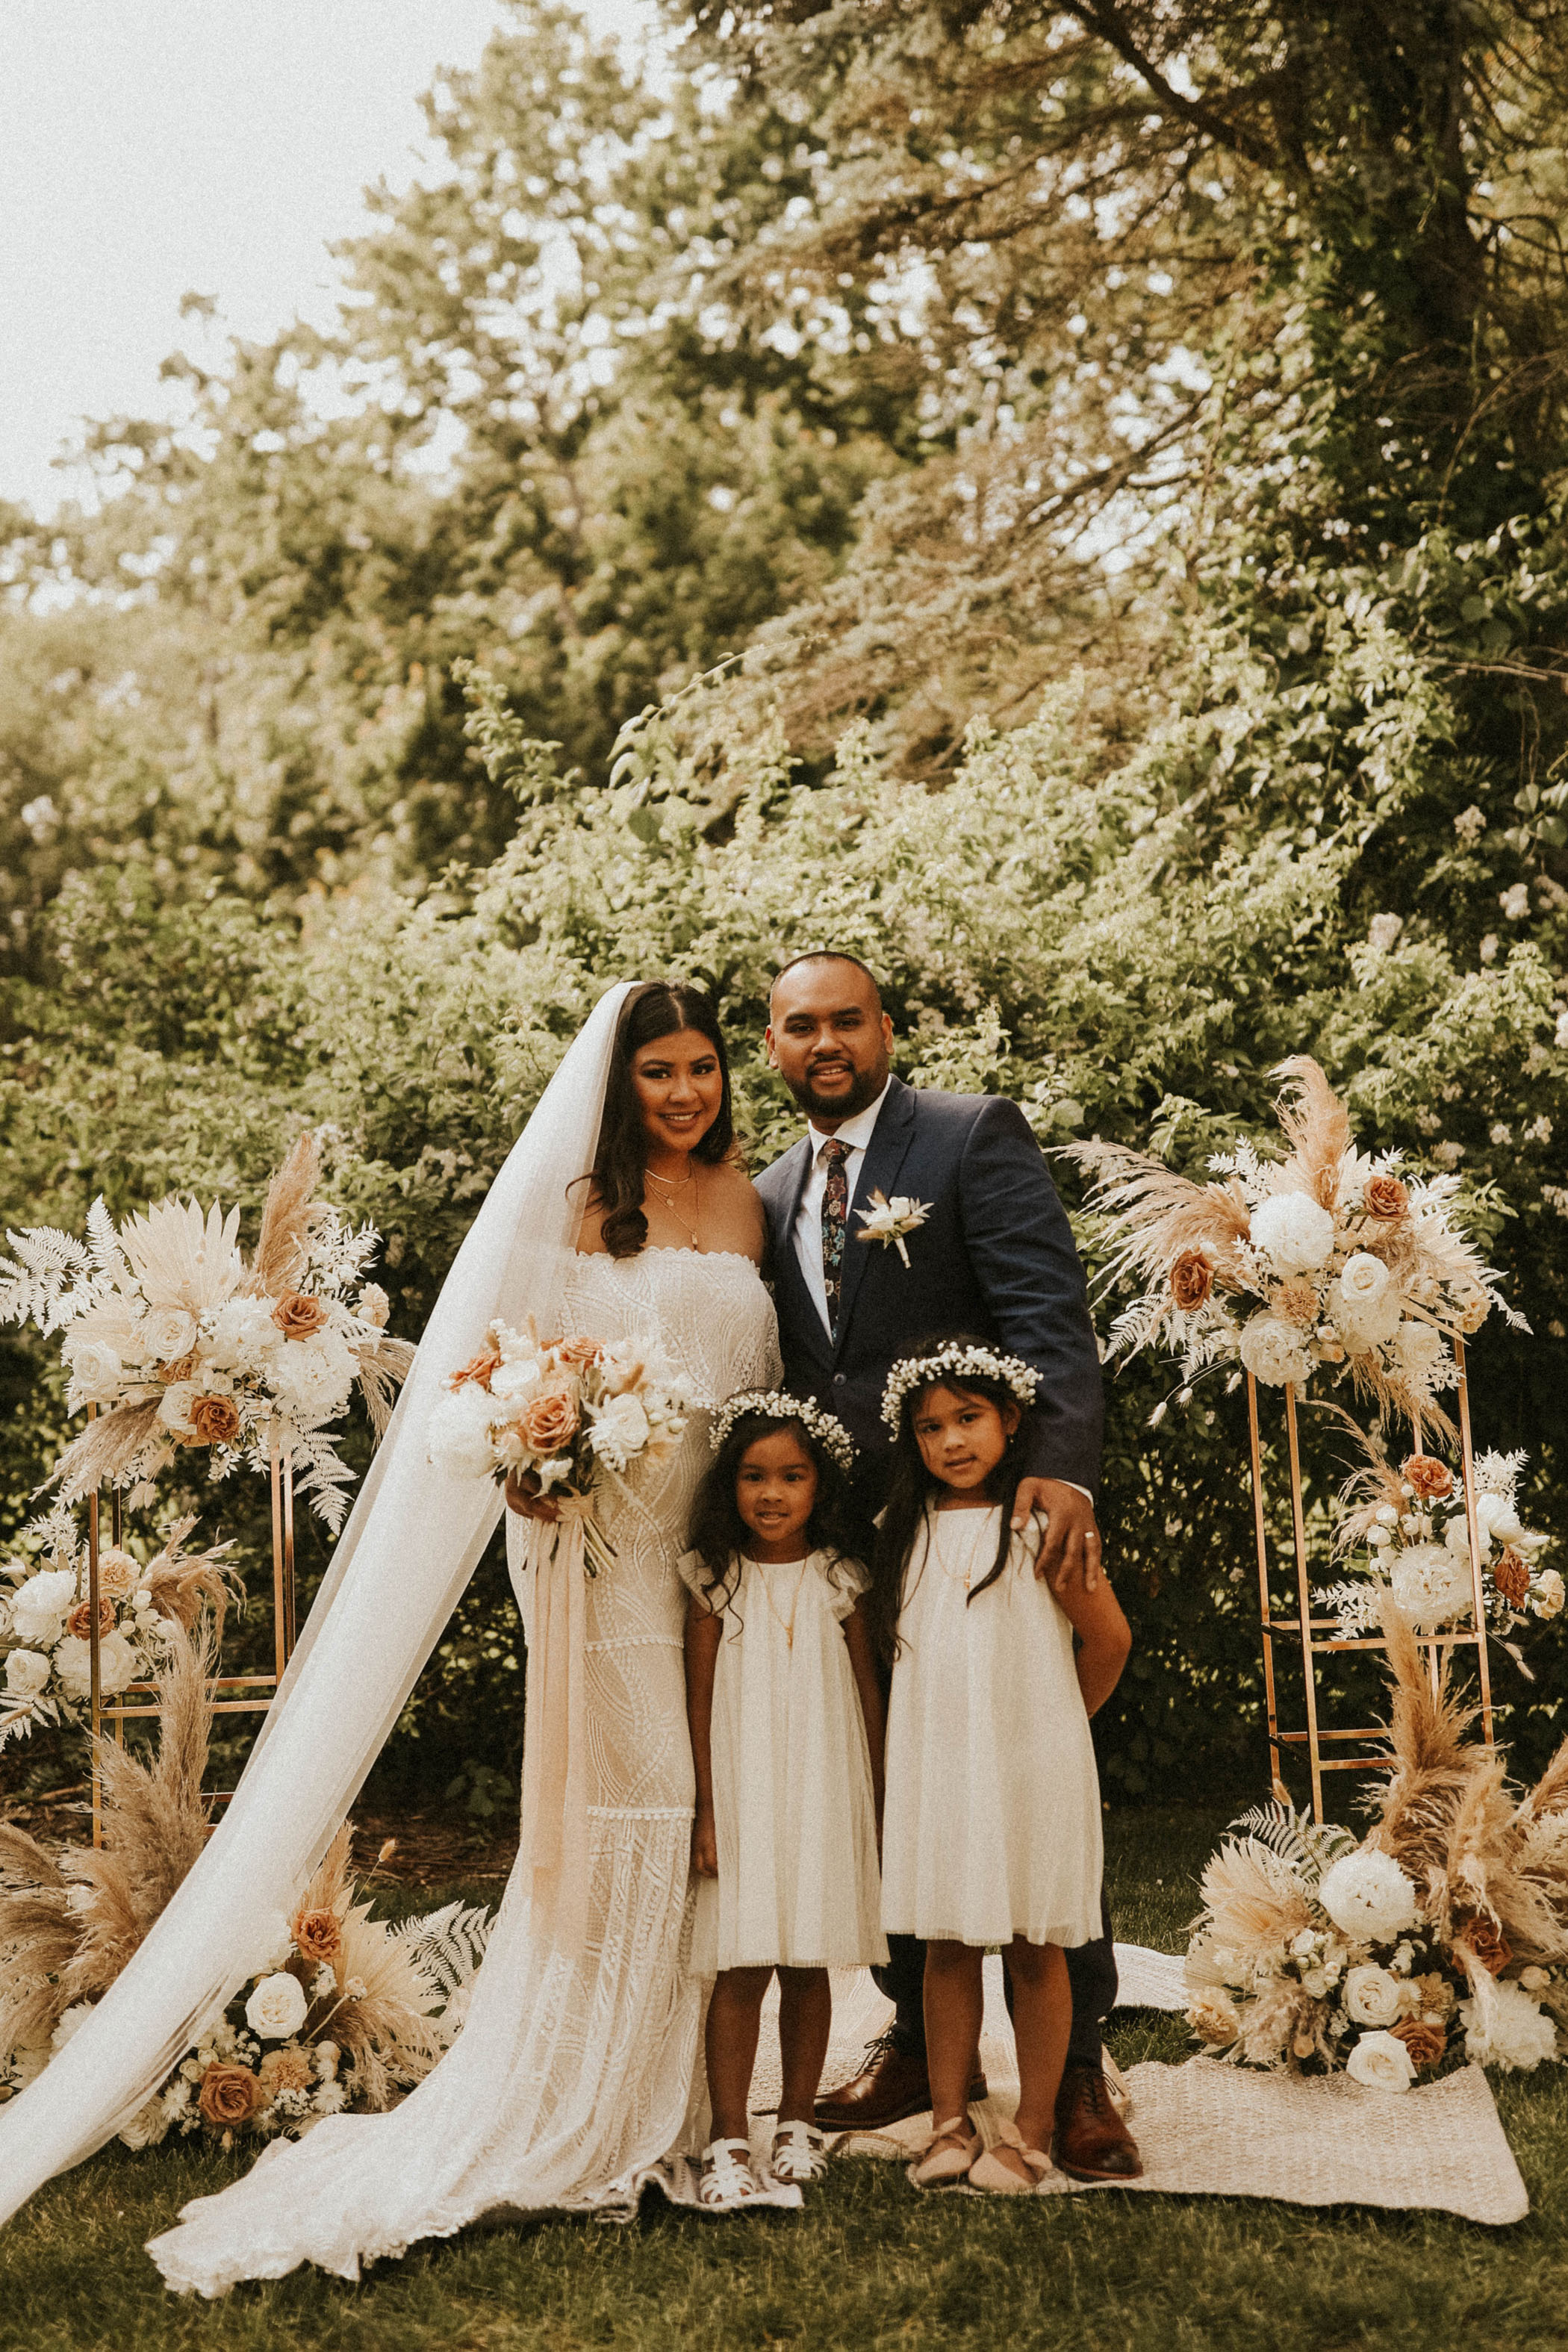 New husband and wife hugging their two daughters on their wedding day